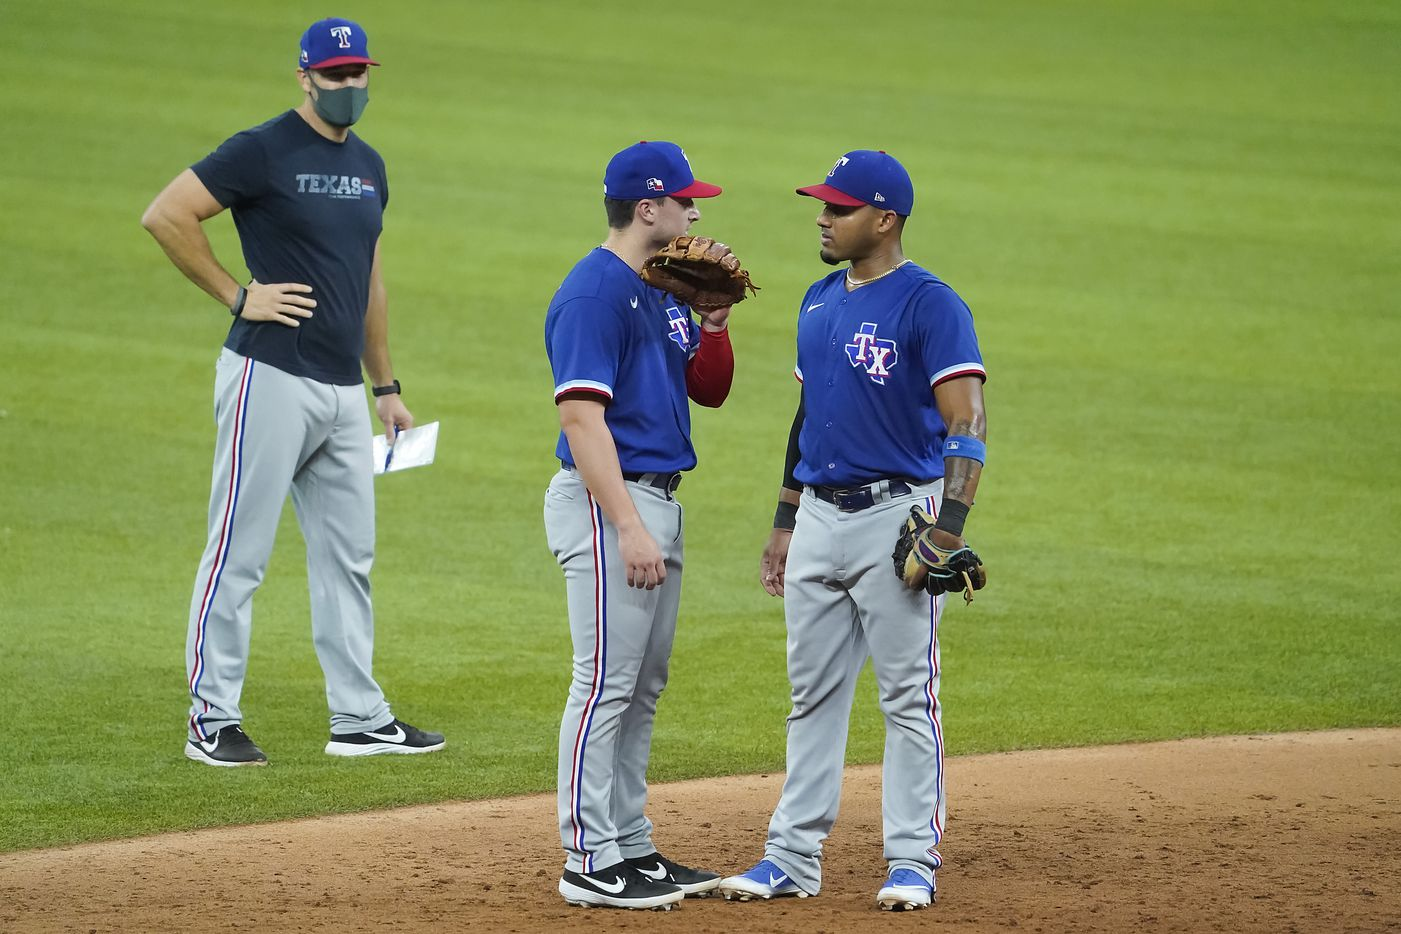 Texas Rangers infielder Justin Foscue (center) talks with infielder Andy Ibanez as field coordinator Matt Hagen looks on during a game between players at the team's alternate training site at Globe Life Field on Saturday, Sept. 19, 2020.